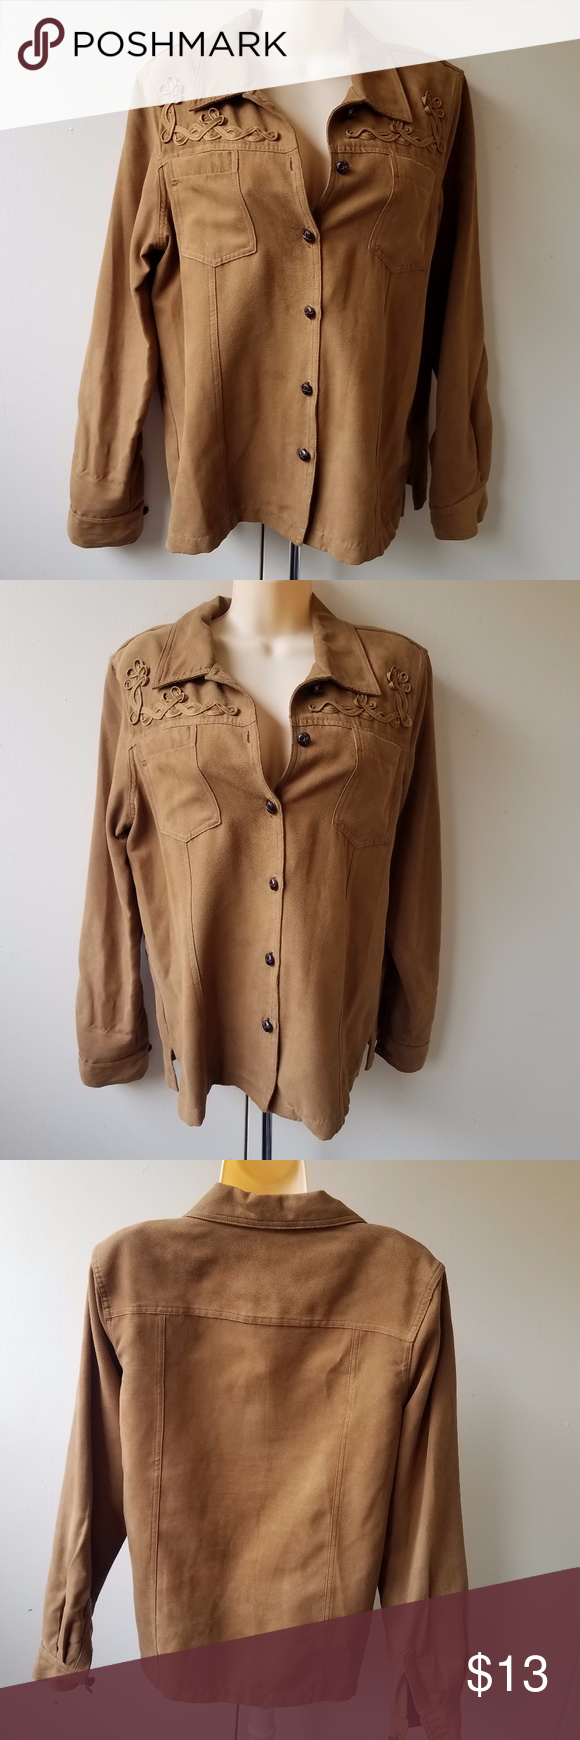 "NAPA VALLEY Women's Brown Button Down Shirt 100% poly Look/feel of brushed suede Measures 20"" from pit to pit & 25"" in length Excellent Condition Napa Valley Tops Button Down Shirts"